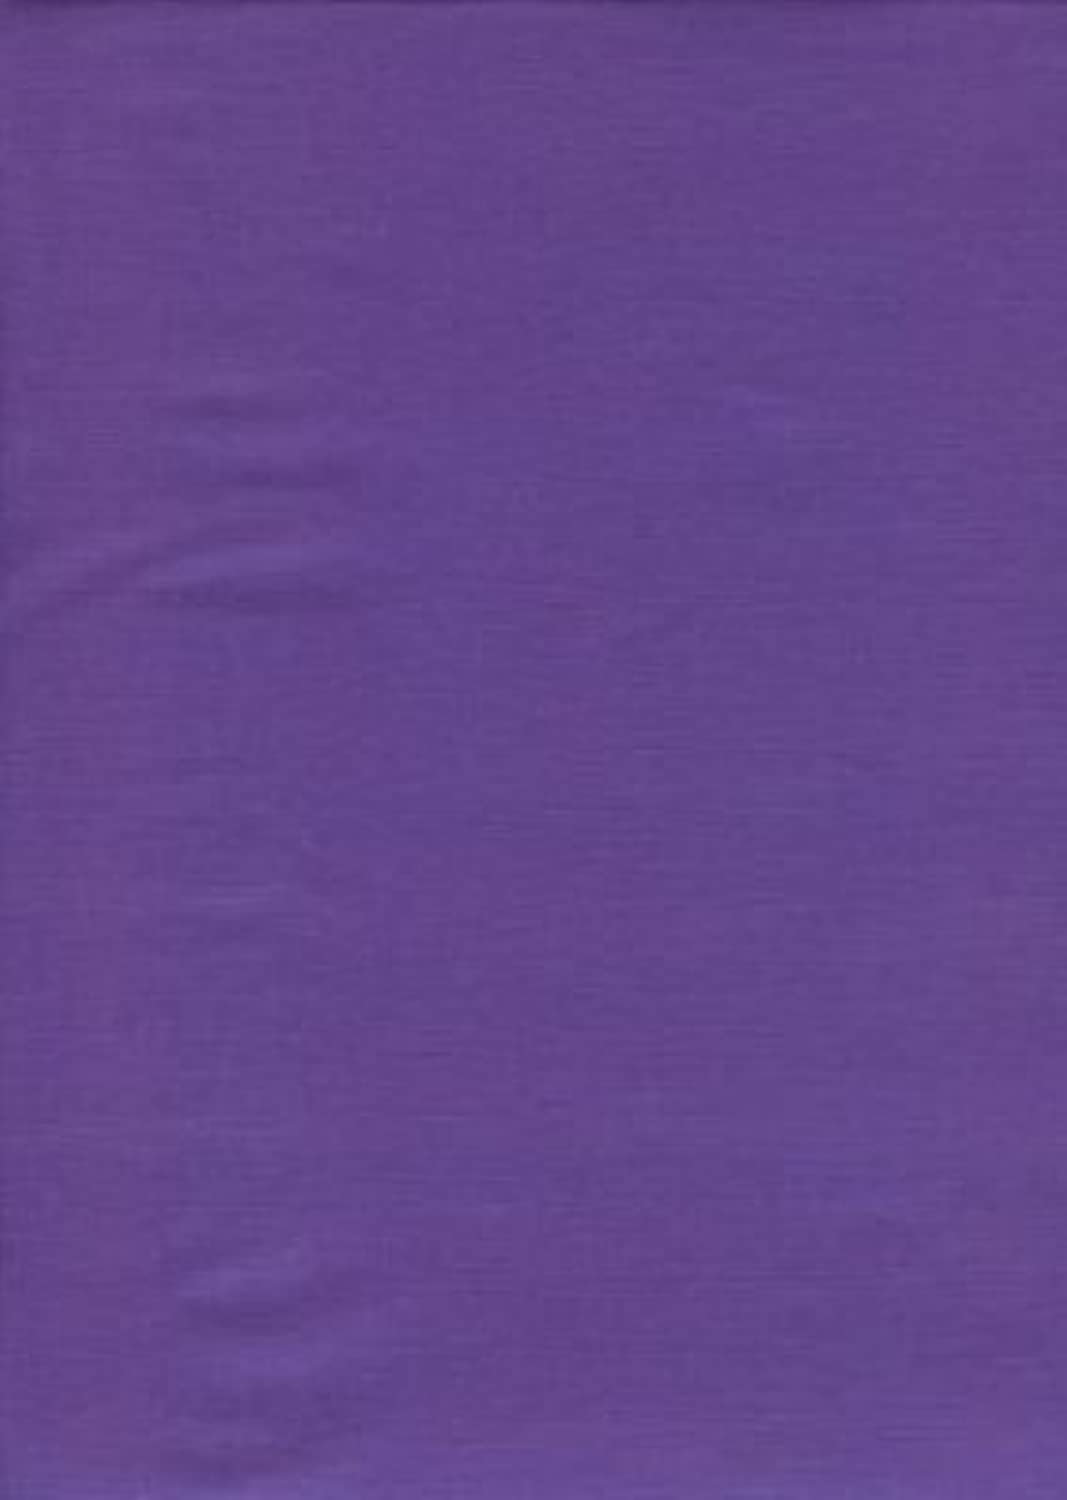 SheetWorld C-ST-WS!2 C-ST-WS!2 Crib Sheet Set - Solid Purple Woven - Made In USA by sheetworld